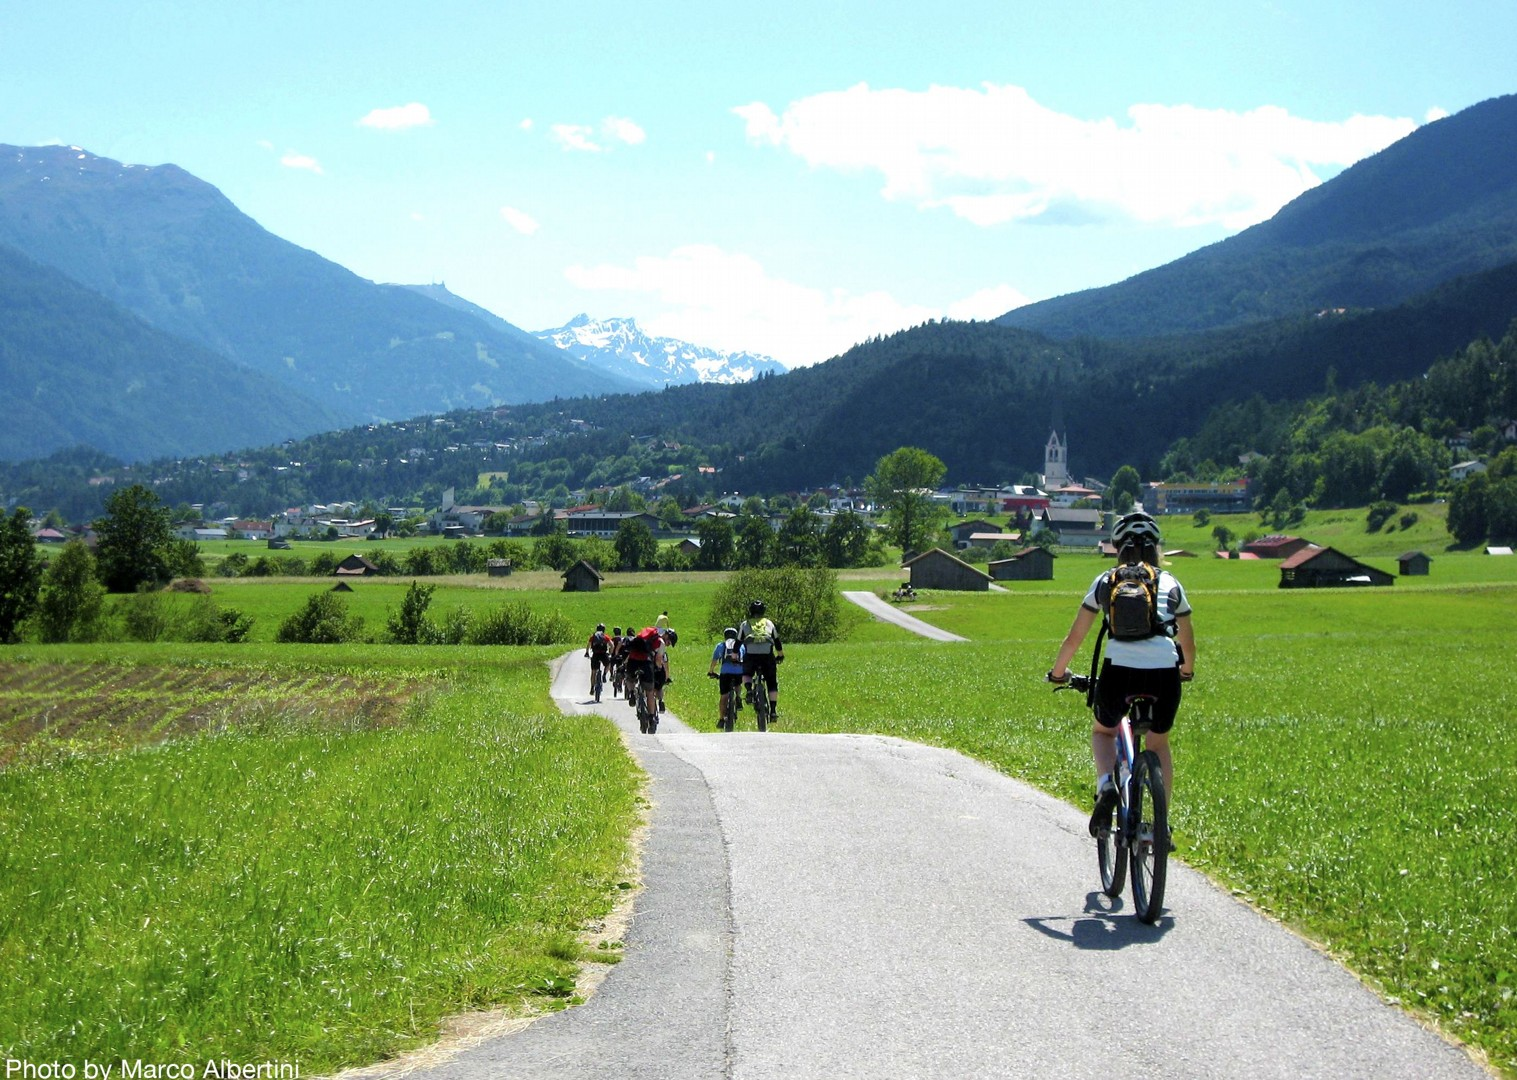 idylic-scenery-self-guided-cycling-adventure.jpg - Austria and Italy - La Via Claudia - Guided Leisure Cycling Holiday - Leisure Cycling